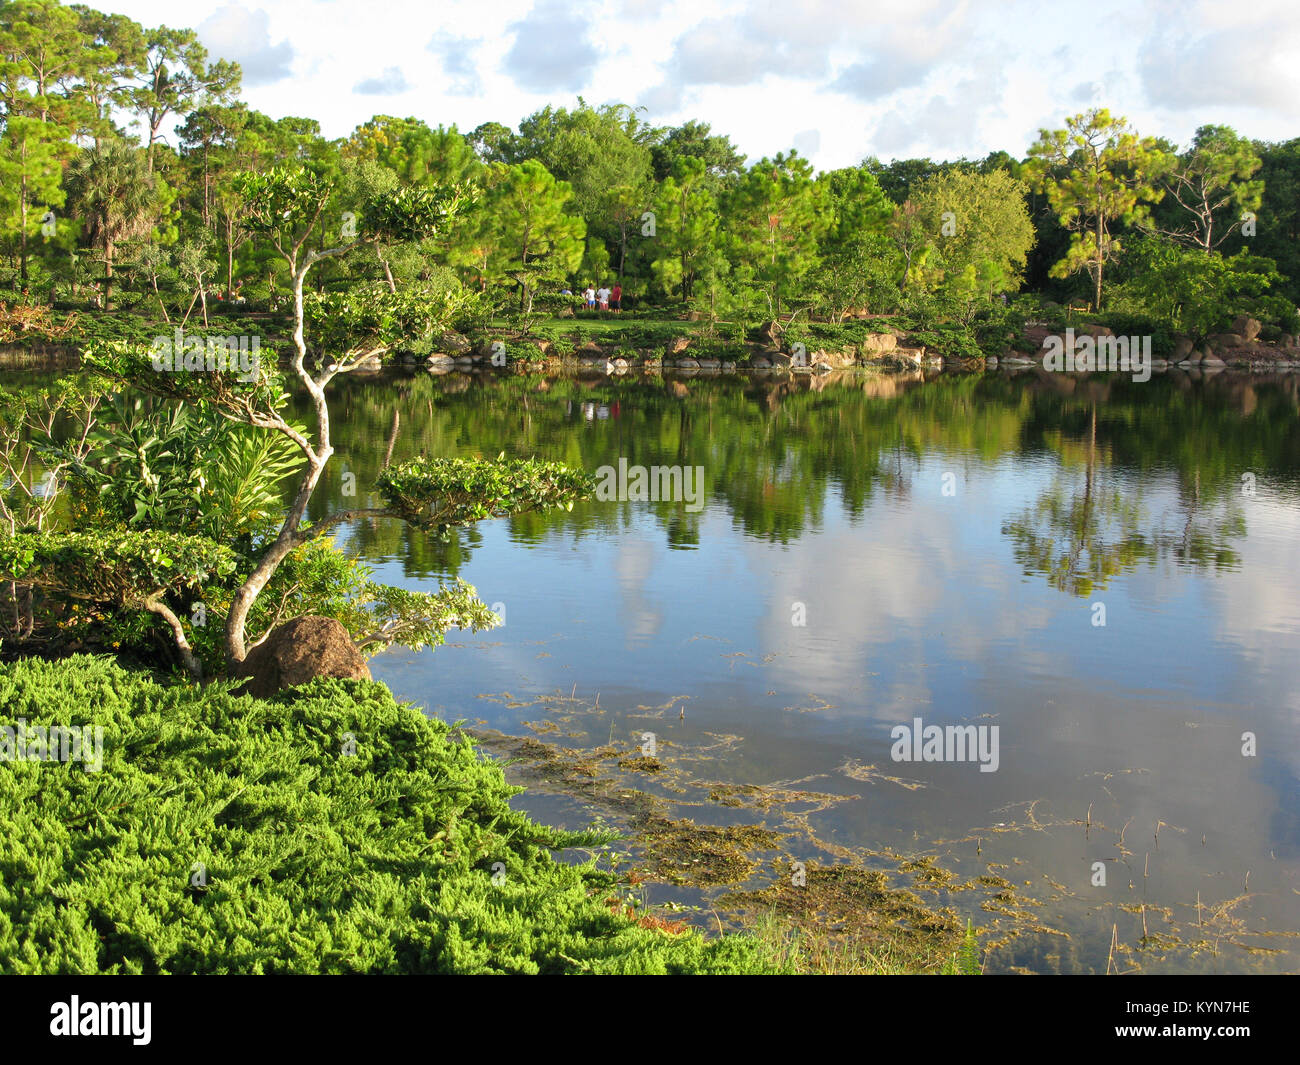 Palm Beach Gardens Florida Stock Photos & Palm Beach Gardens Florida ...